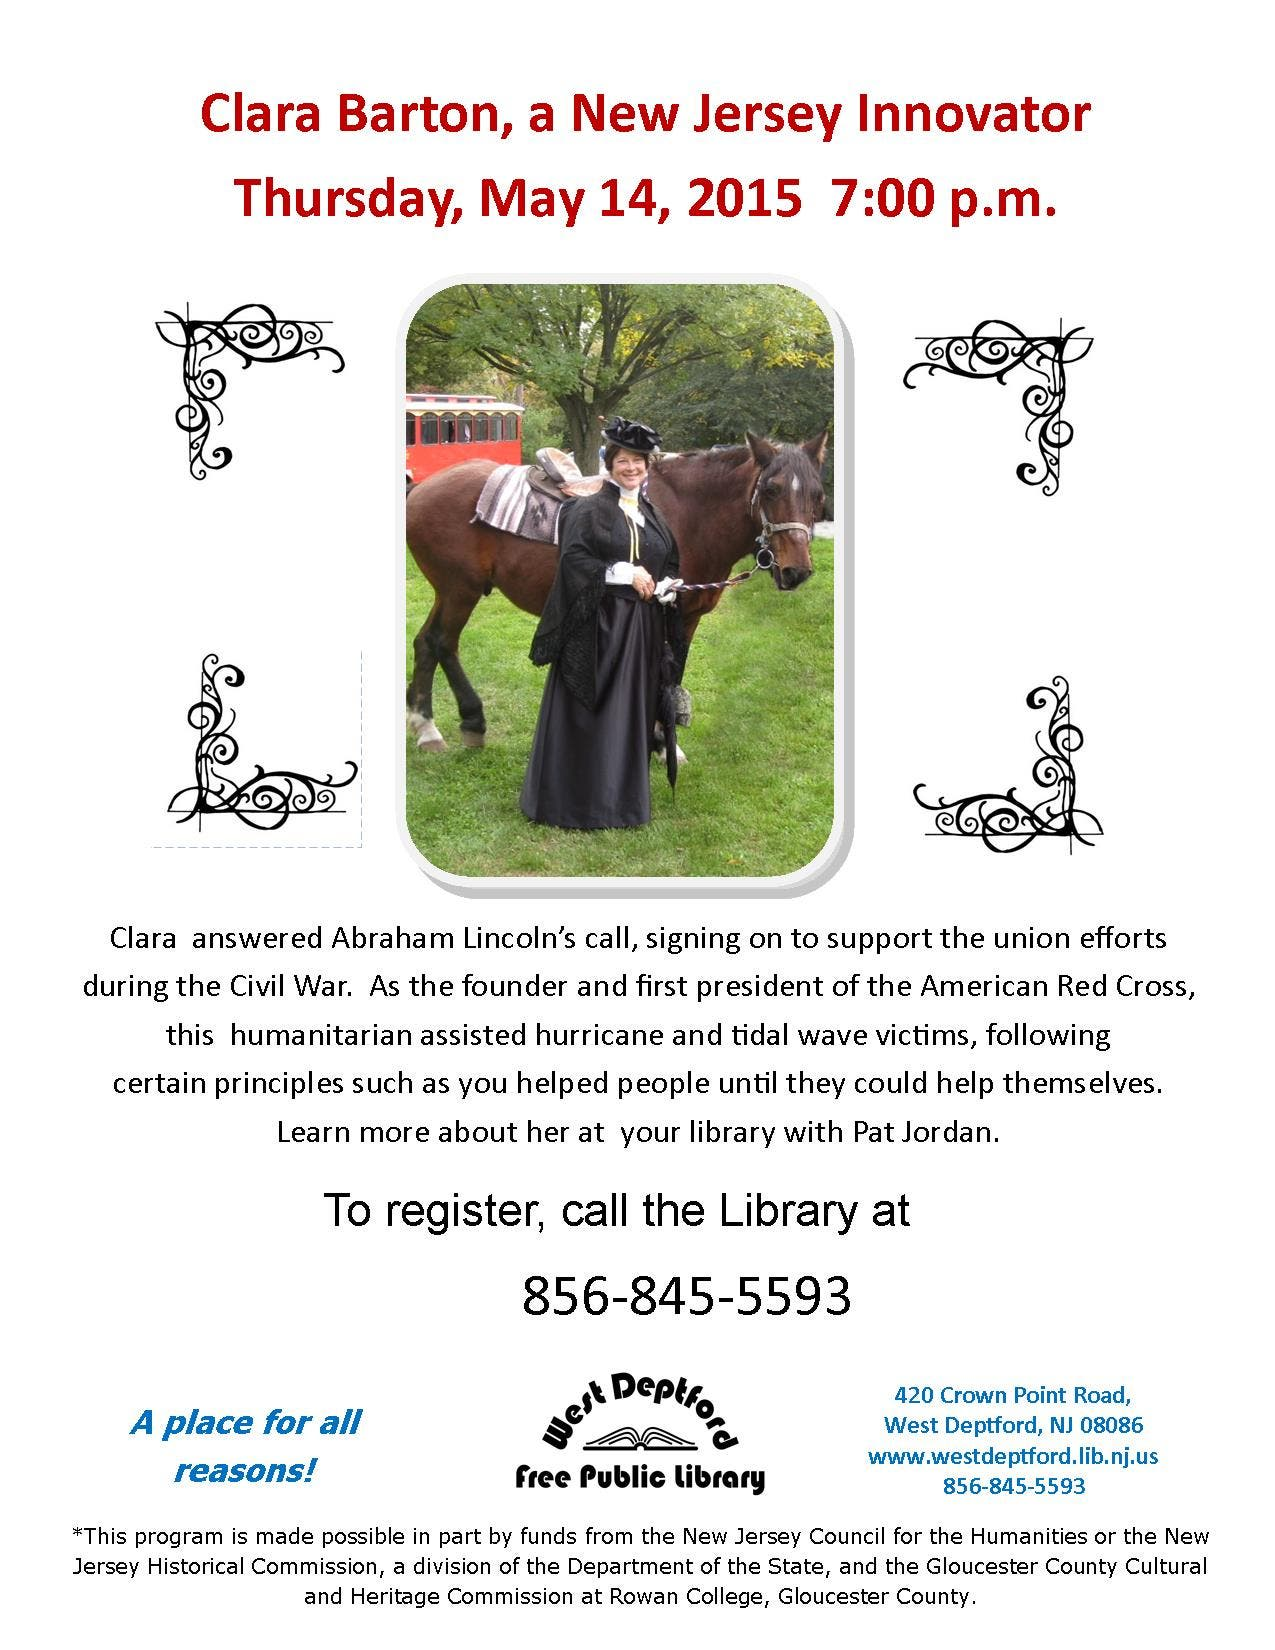 Free Talk Thursday May 14th In >> West Deptford Free Public Library West Deptford Nj Patch